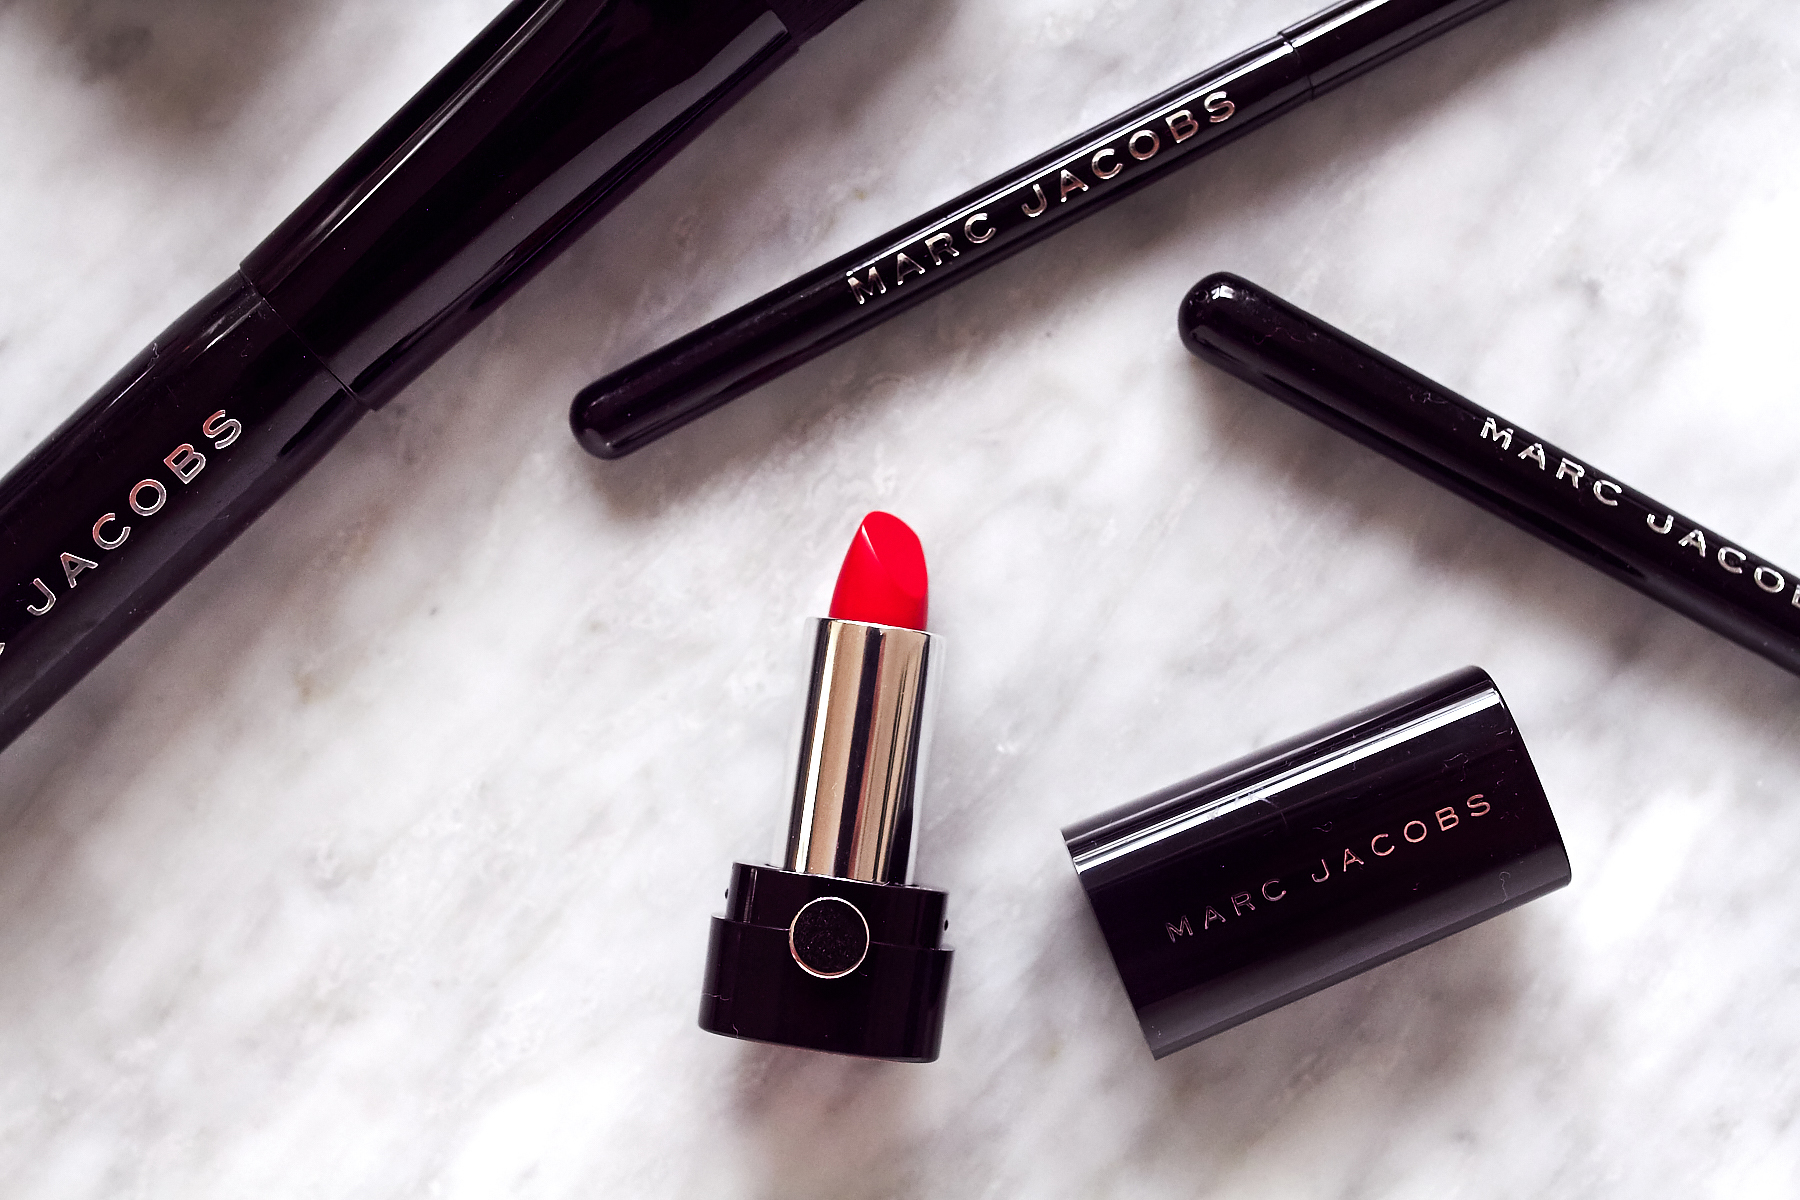 Marc Jacobs Red Lipstick, Beauty